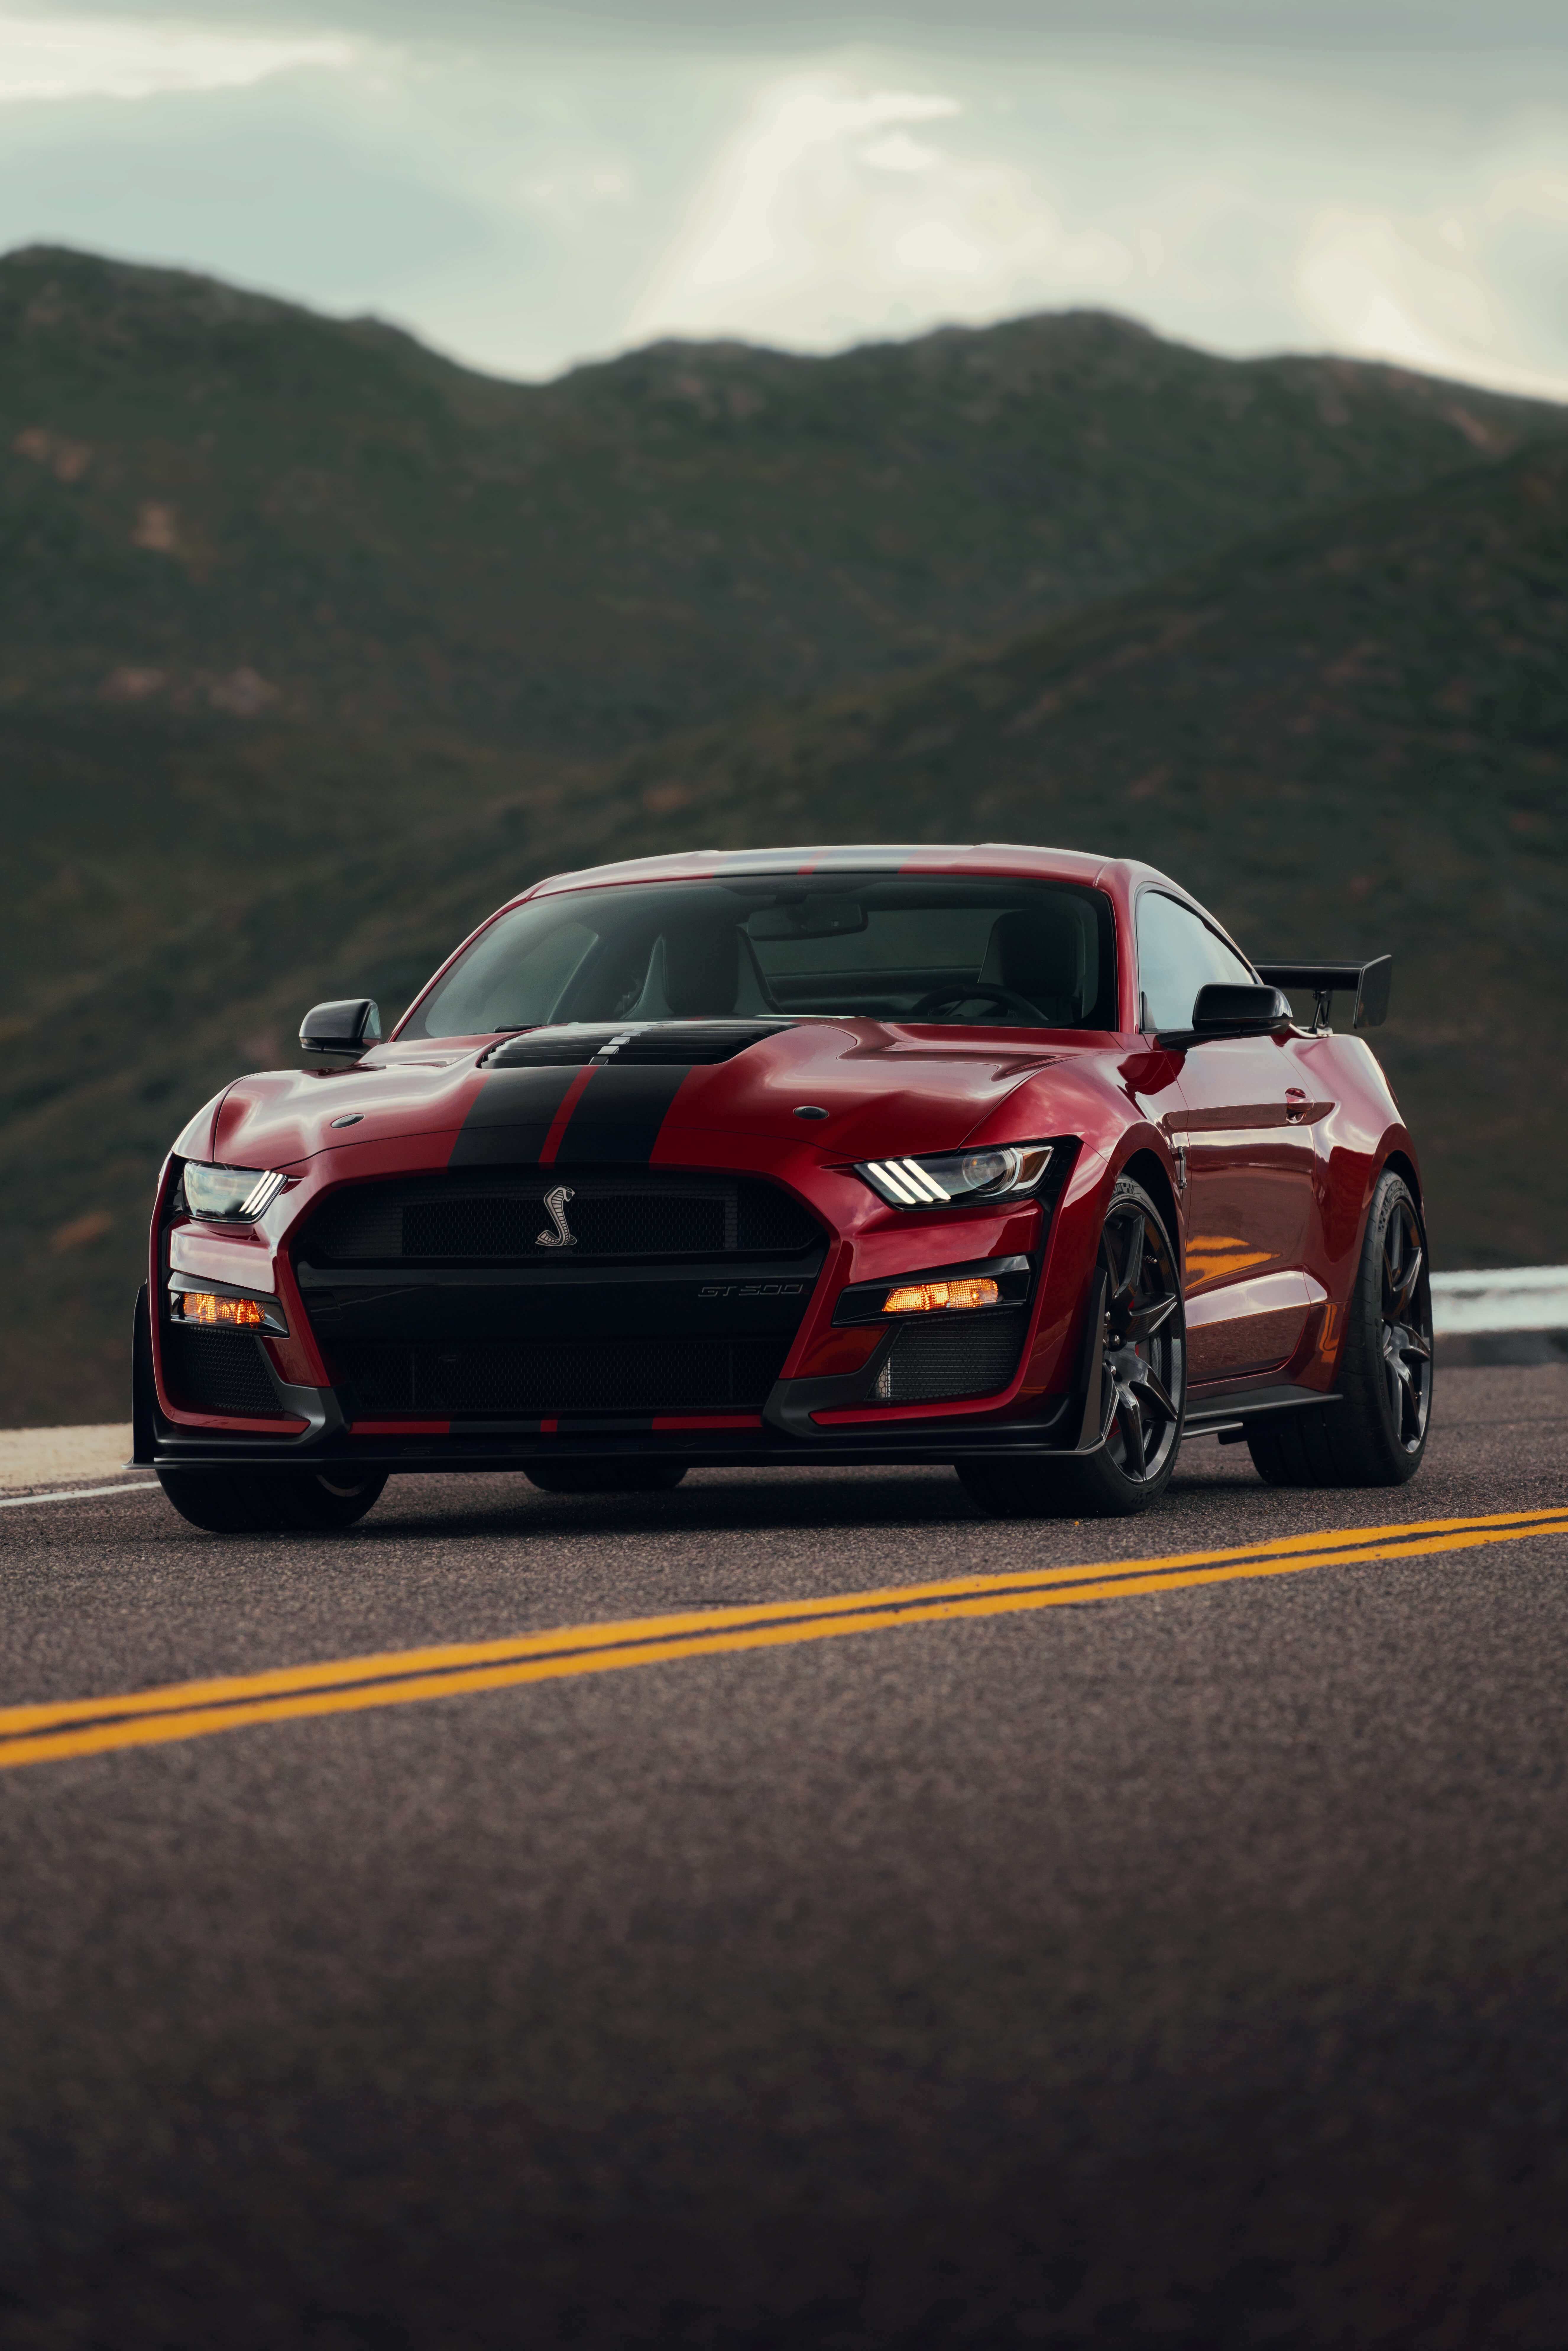 2020 shelby gt500 horsepower specs photos colors 2020 shelby gt500 horsepower